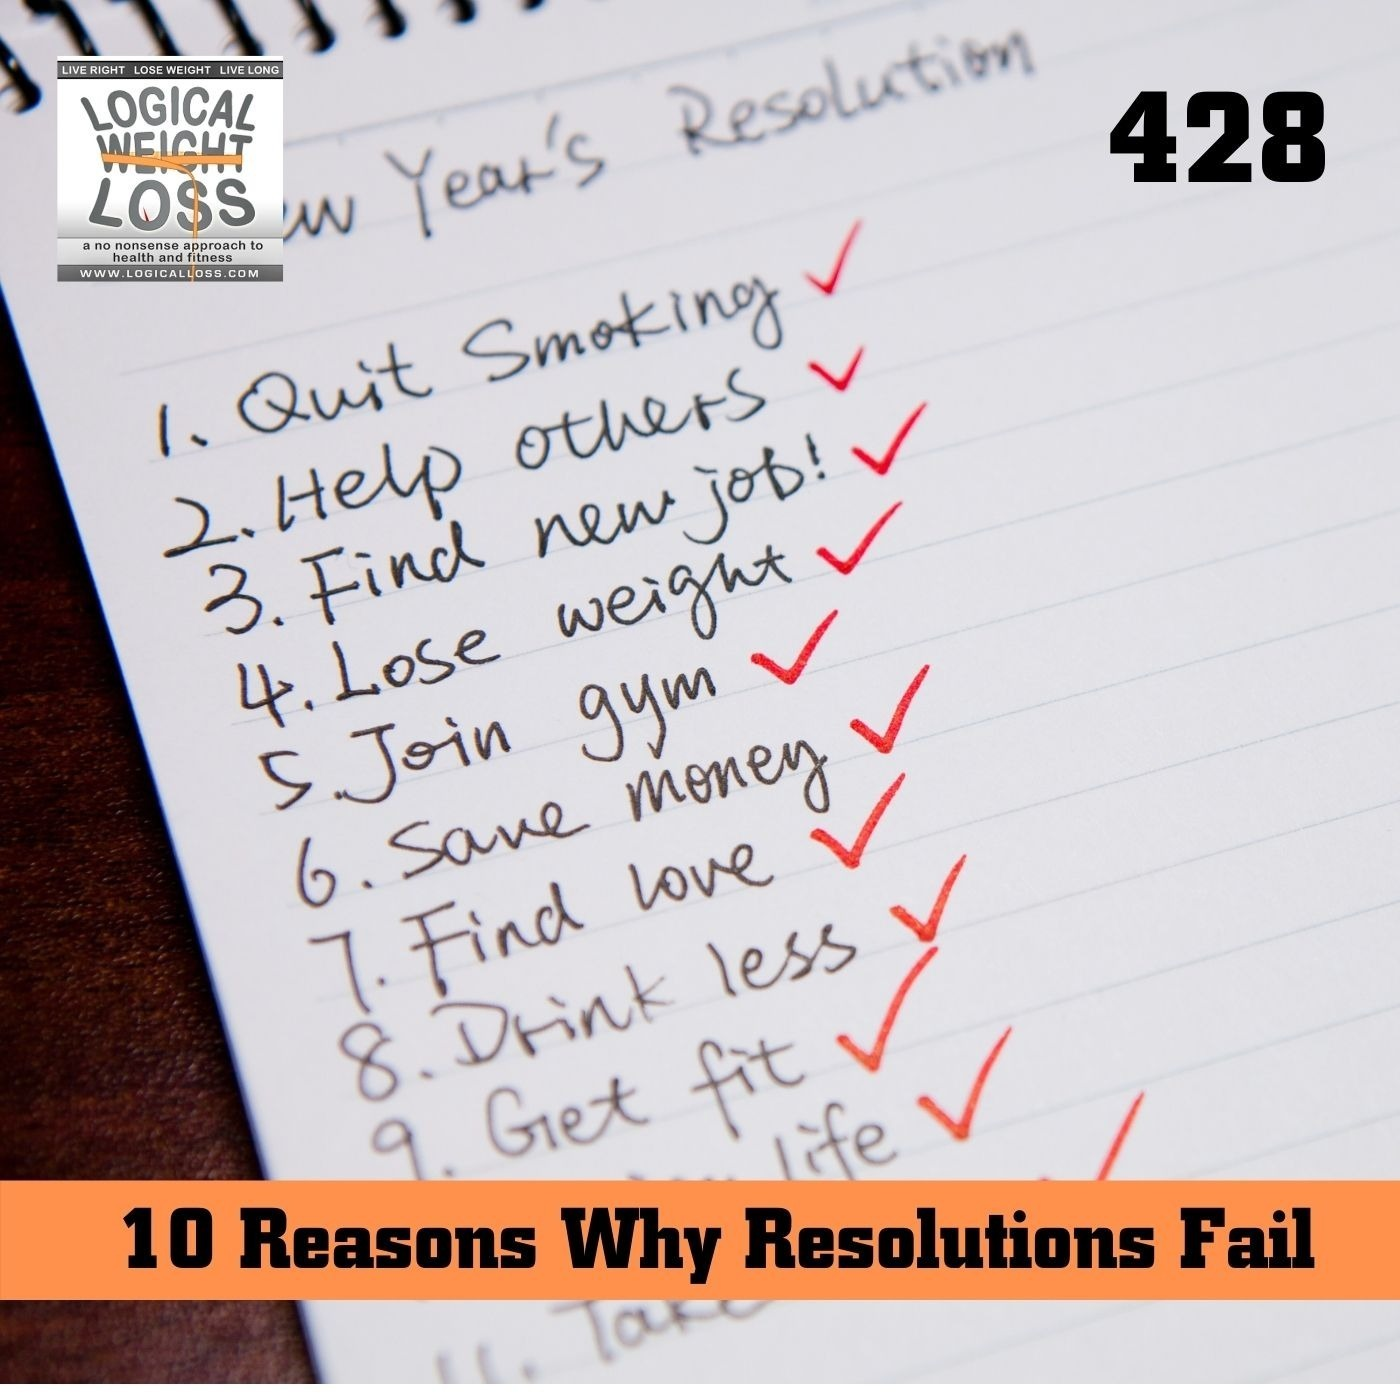 10 Reasons Why Resolution Fail - And How to Create One That Doesn't